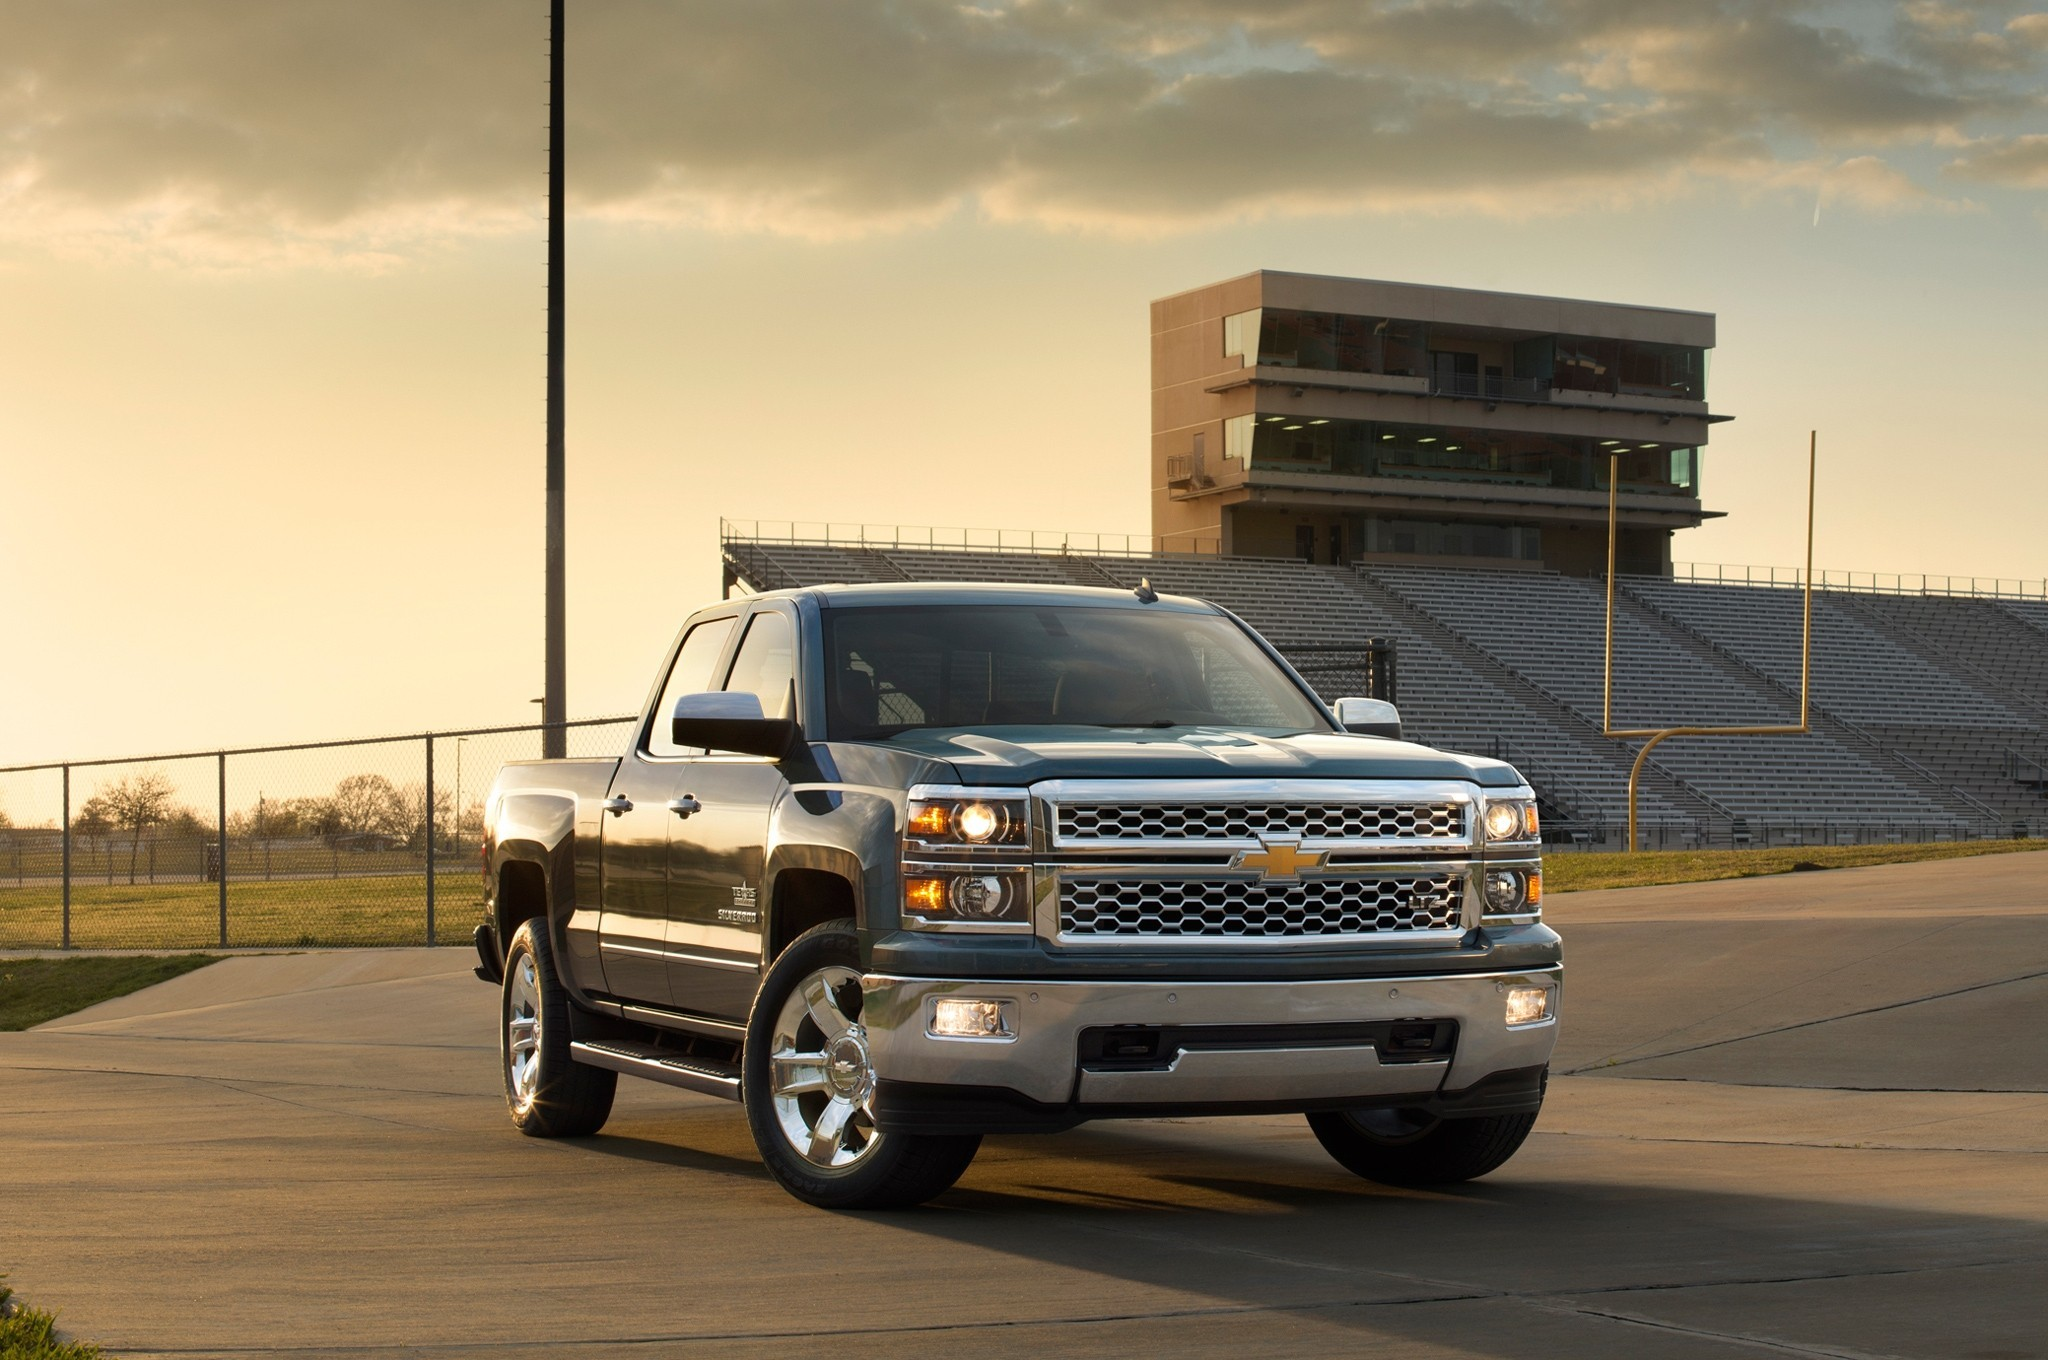 2048x1360 Chevrolet Silverado 2014 Black. Chevrolet Silverado 2014 HD Wallpaper